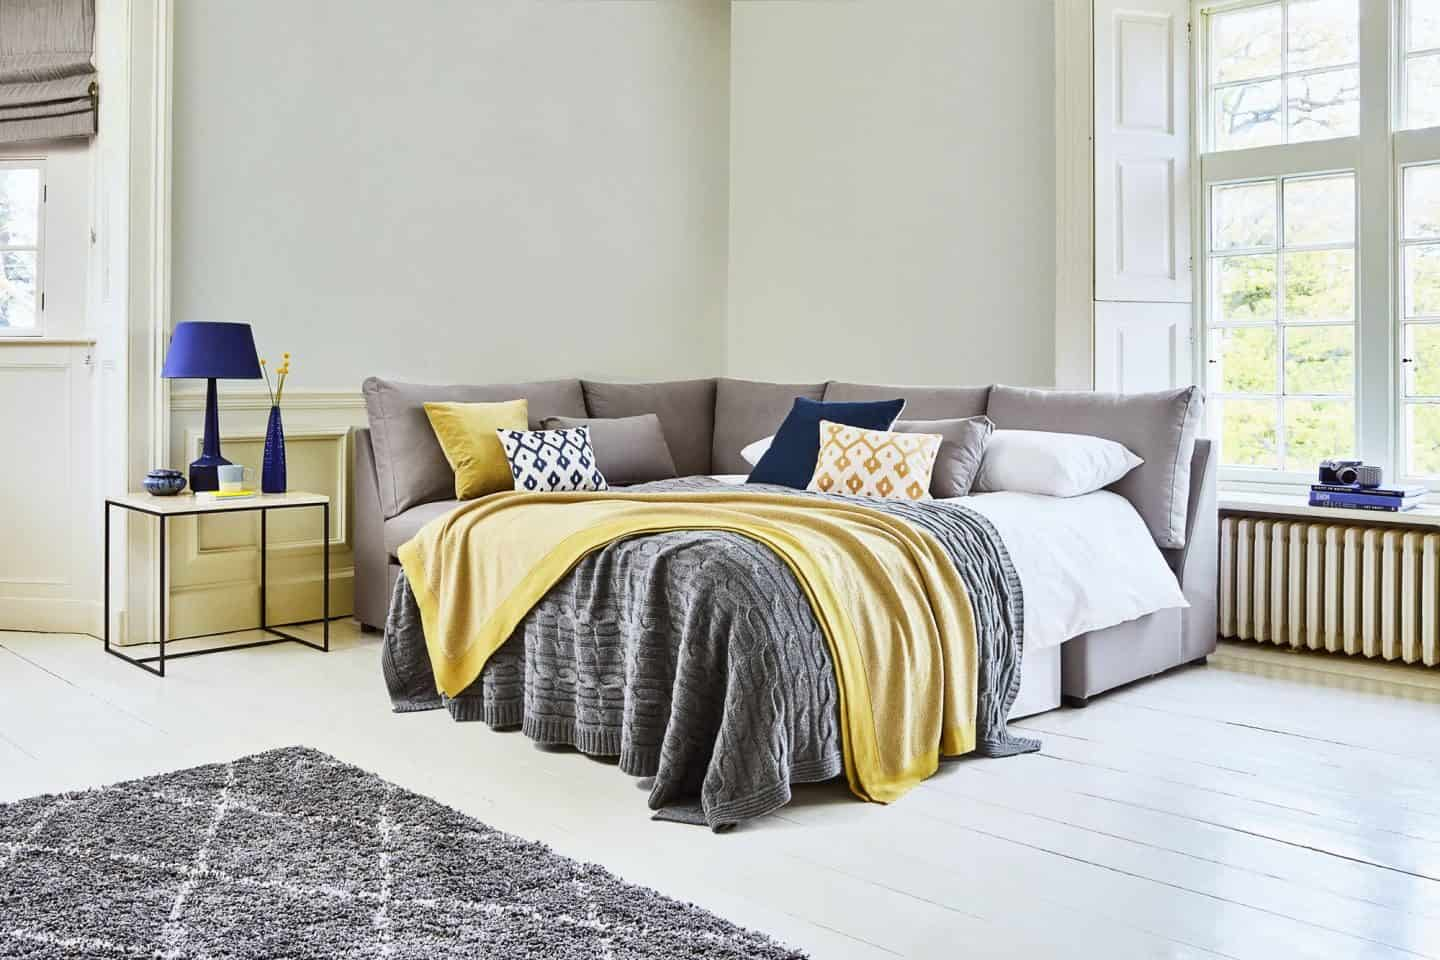 How to choose perfect fabric for furniture. Willow & Hall - 5 Seater Armless Storage Sofa Bed